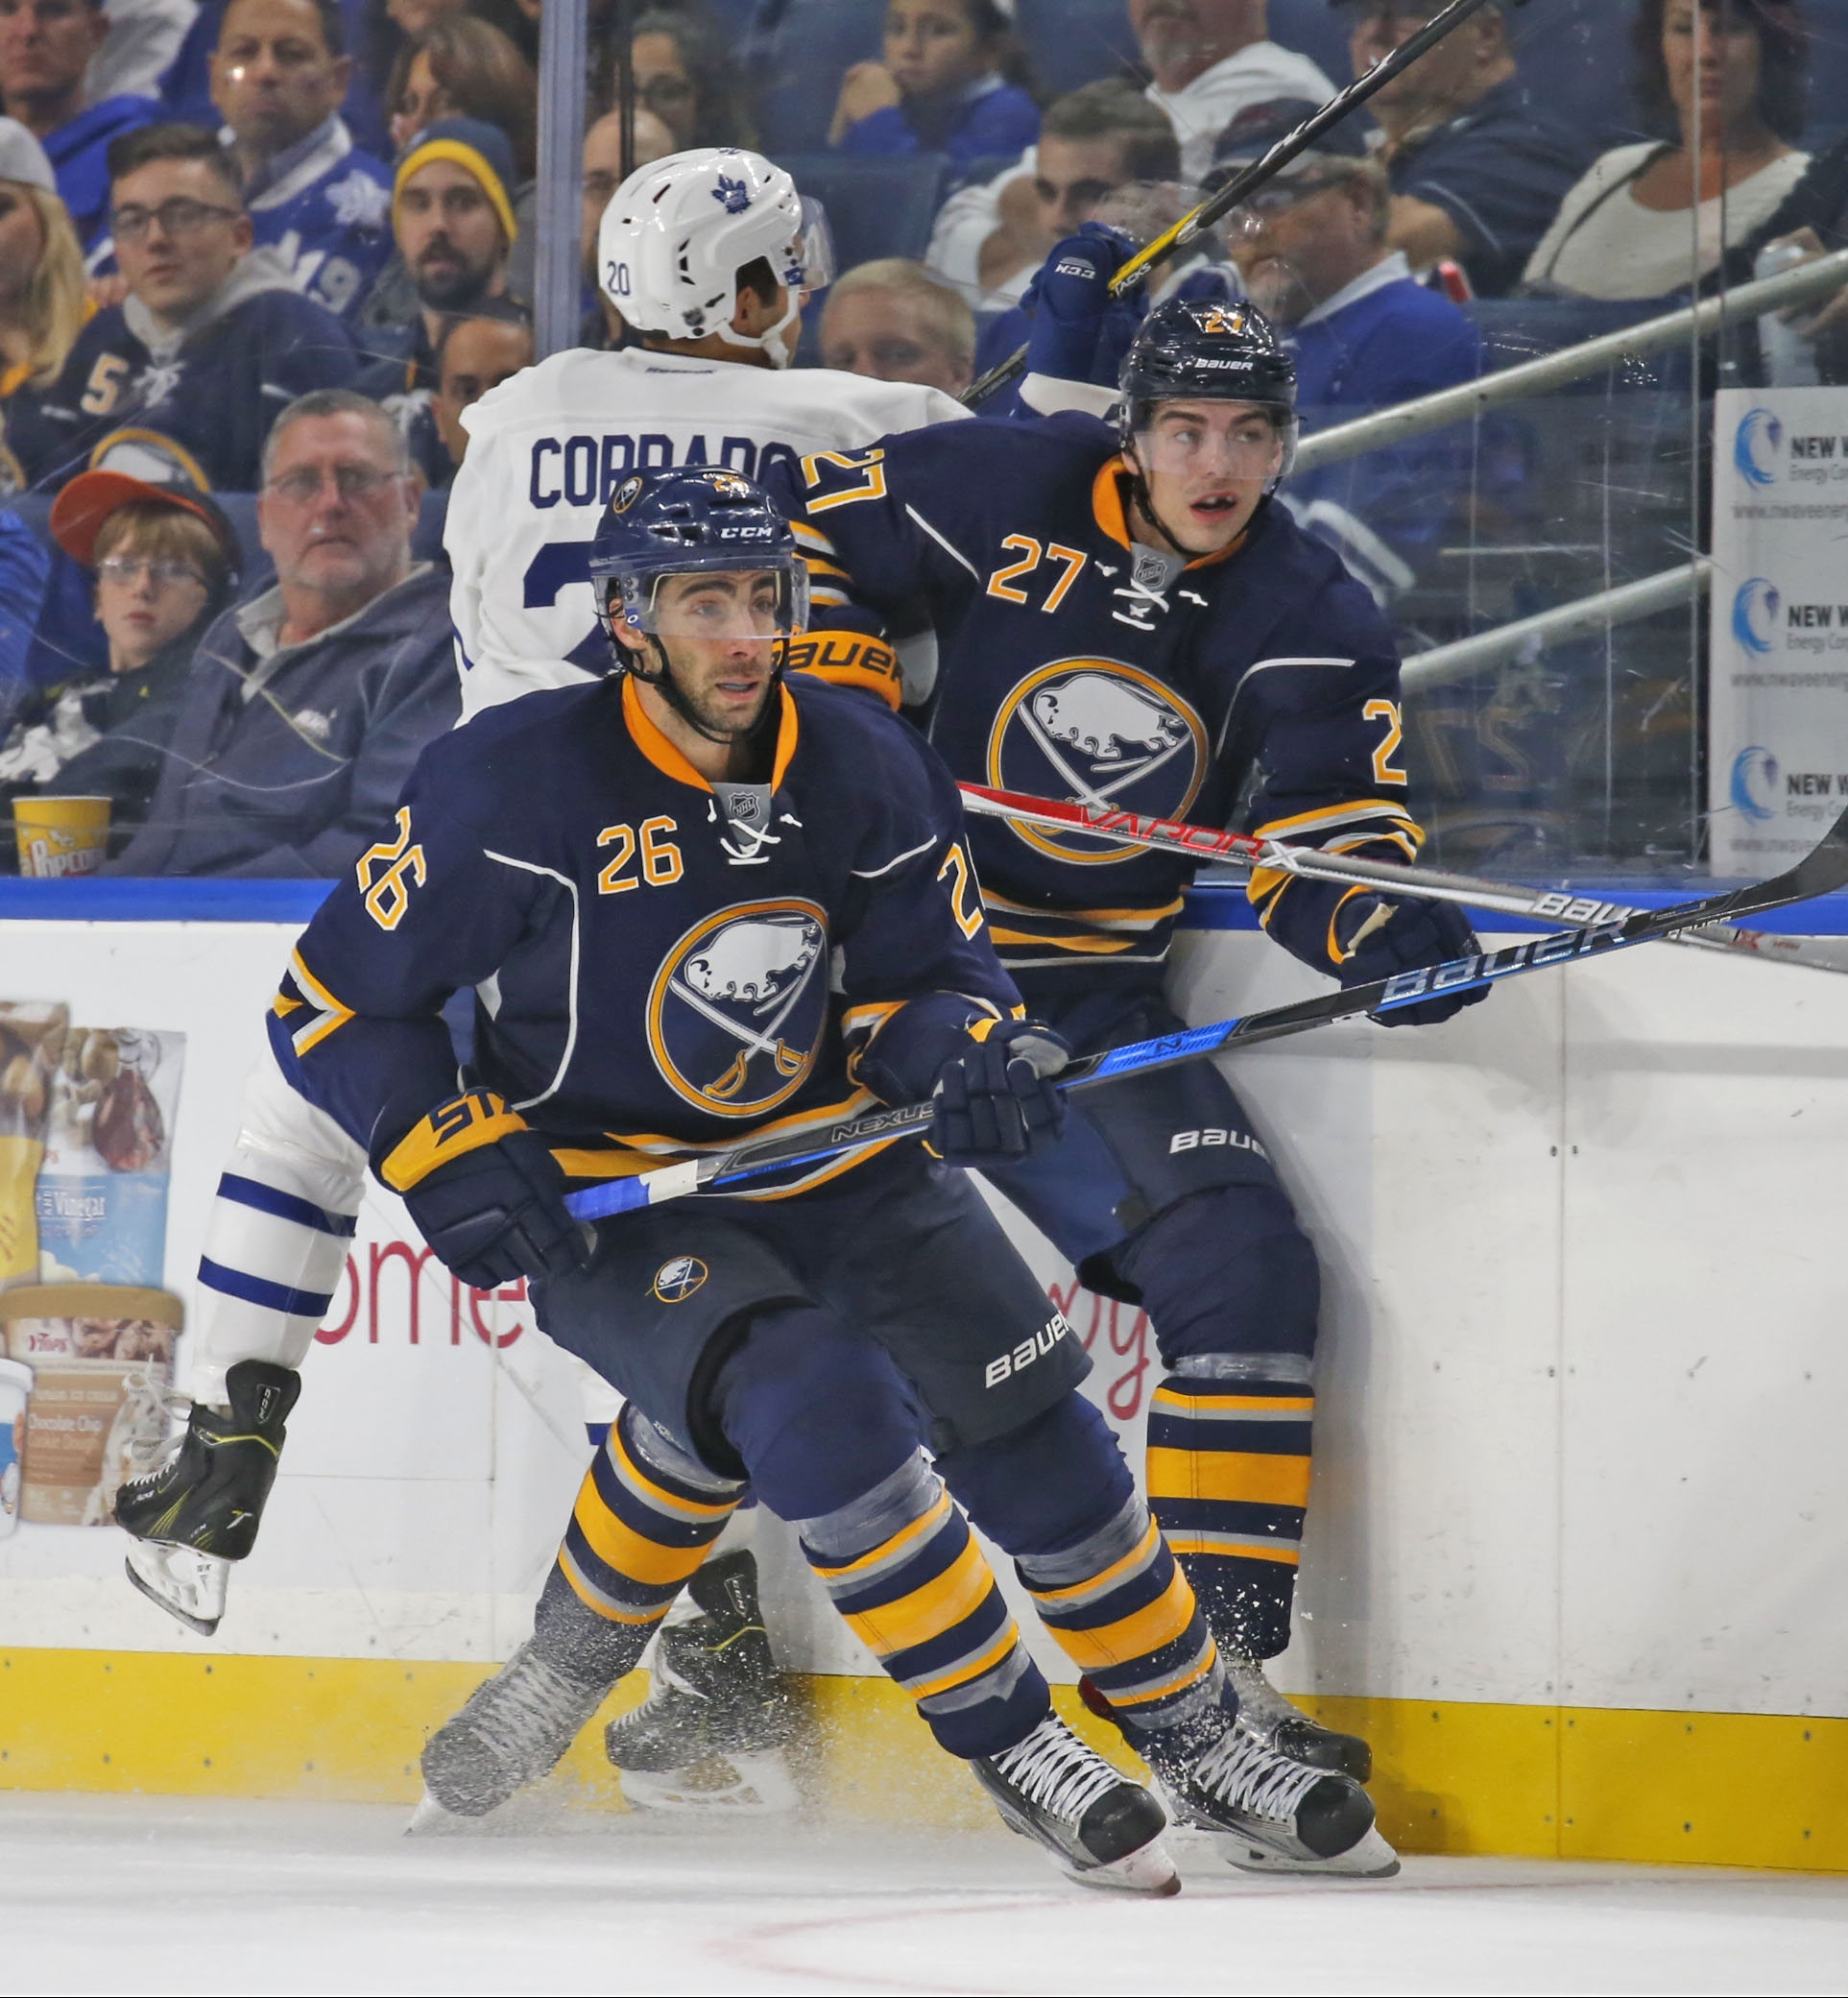 Matt Moulson (26) and Derek Grant are skating on the same line for the Sabres.